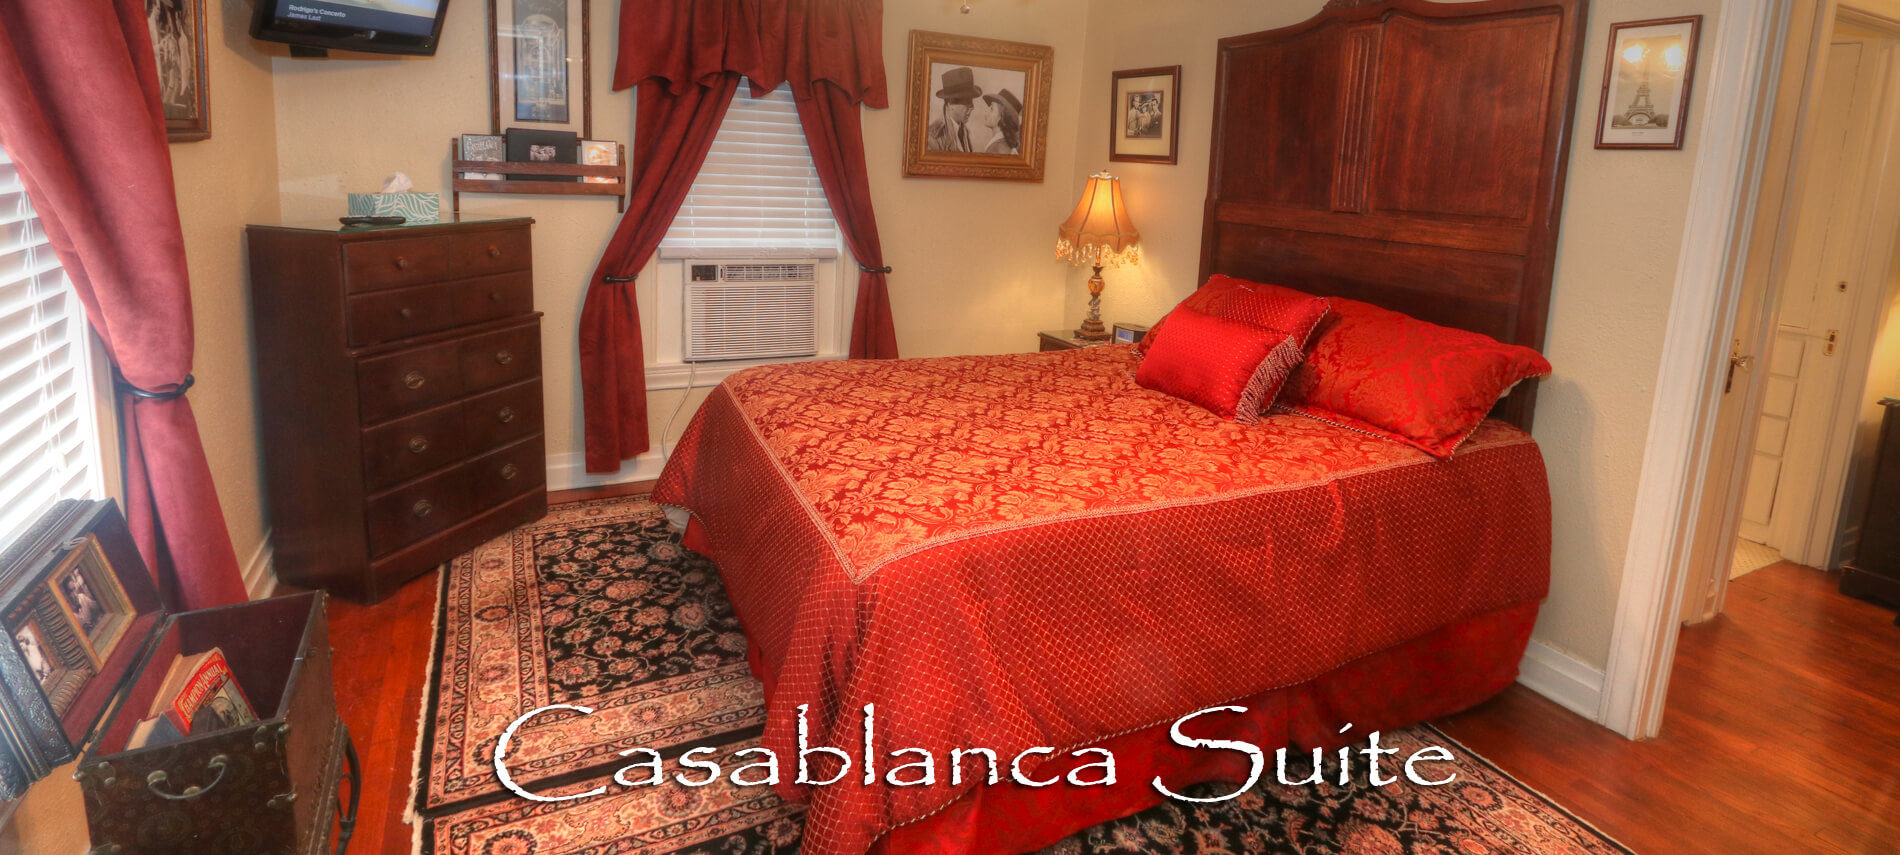 Red and Gold Bedspread with a window unit, tv and brown dresser drawers